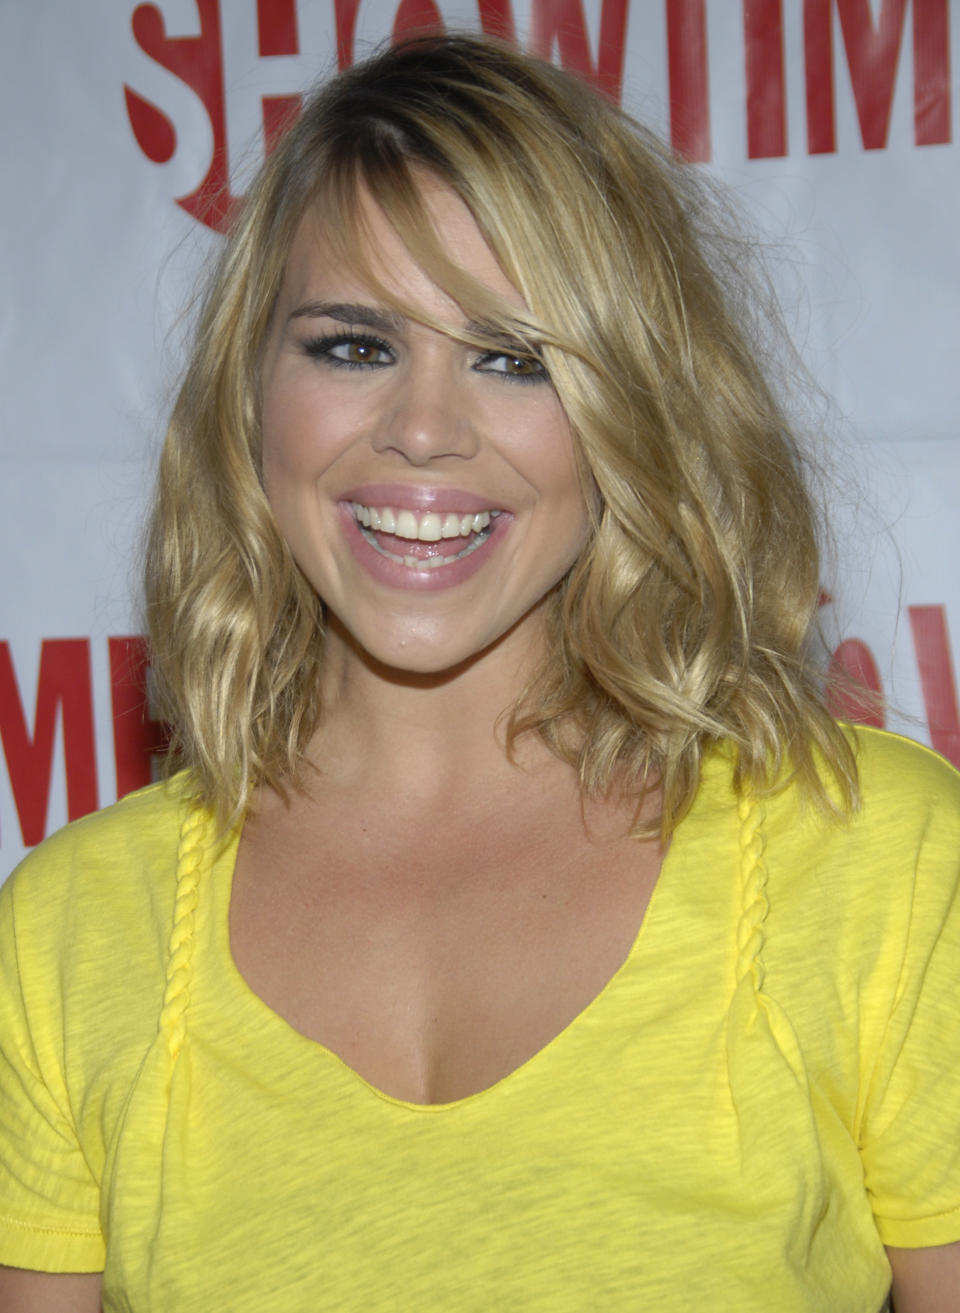 Actress Billie Piper arrives at the Showtime party for the Television Critics Association Winter Press Tour in Los Angeles on Wednesday, Jan. 14, 2009. (AP Photo/Dan Steinberg)